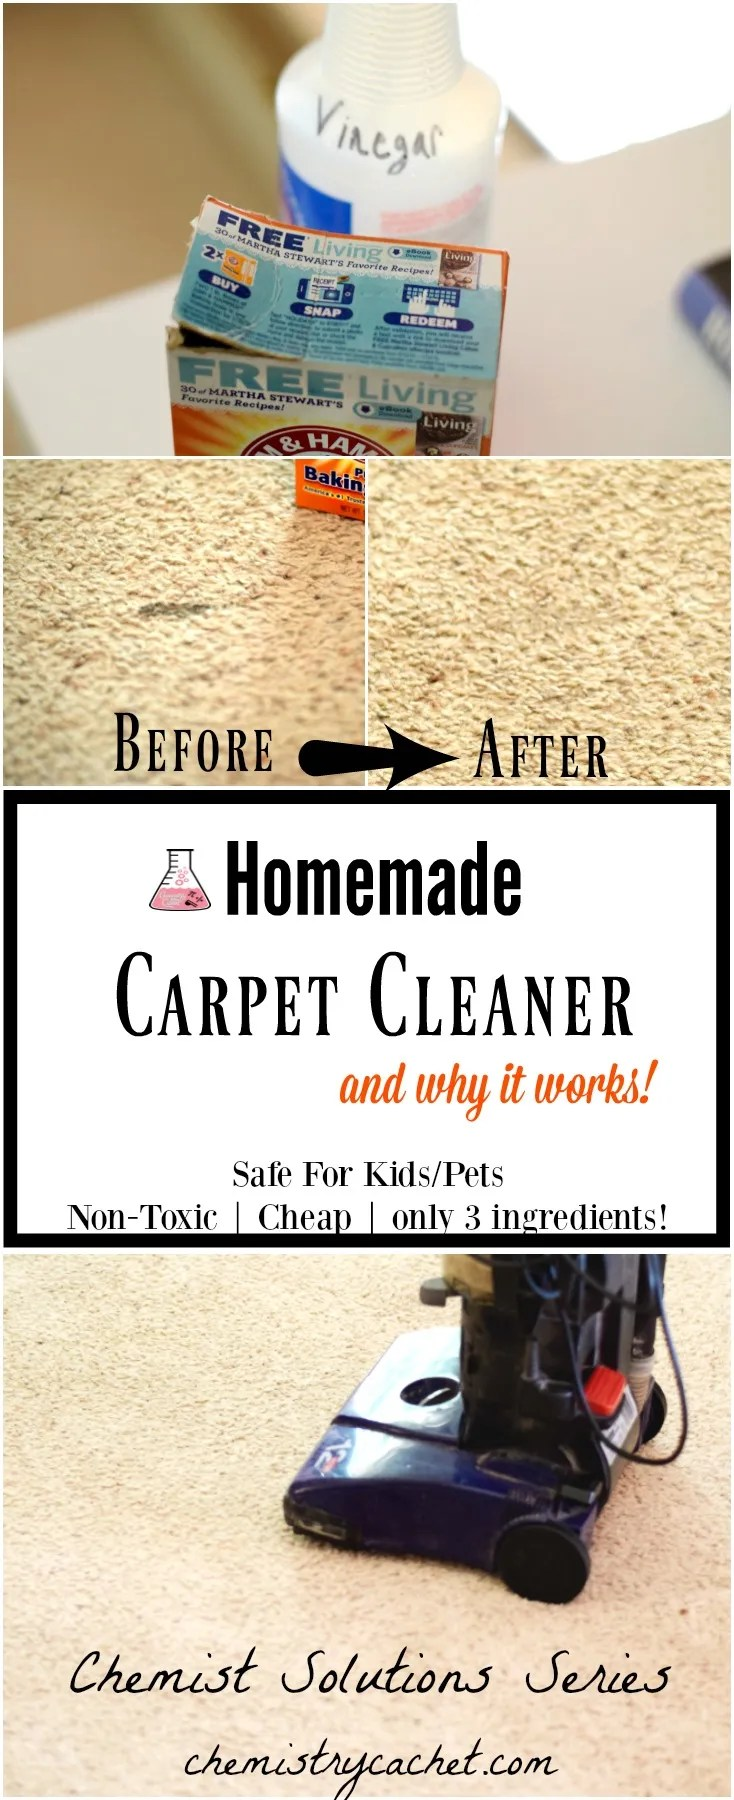 Easy homemade carpet cleaner only 3 ingredients chemistry cachets homemade carpet cleaner recipe safe easy and cheap carpet stain remover solutioingenieria Gallery